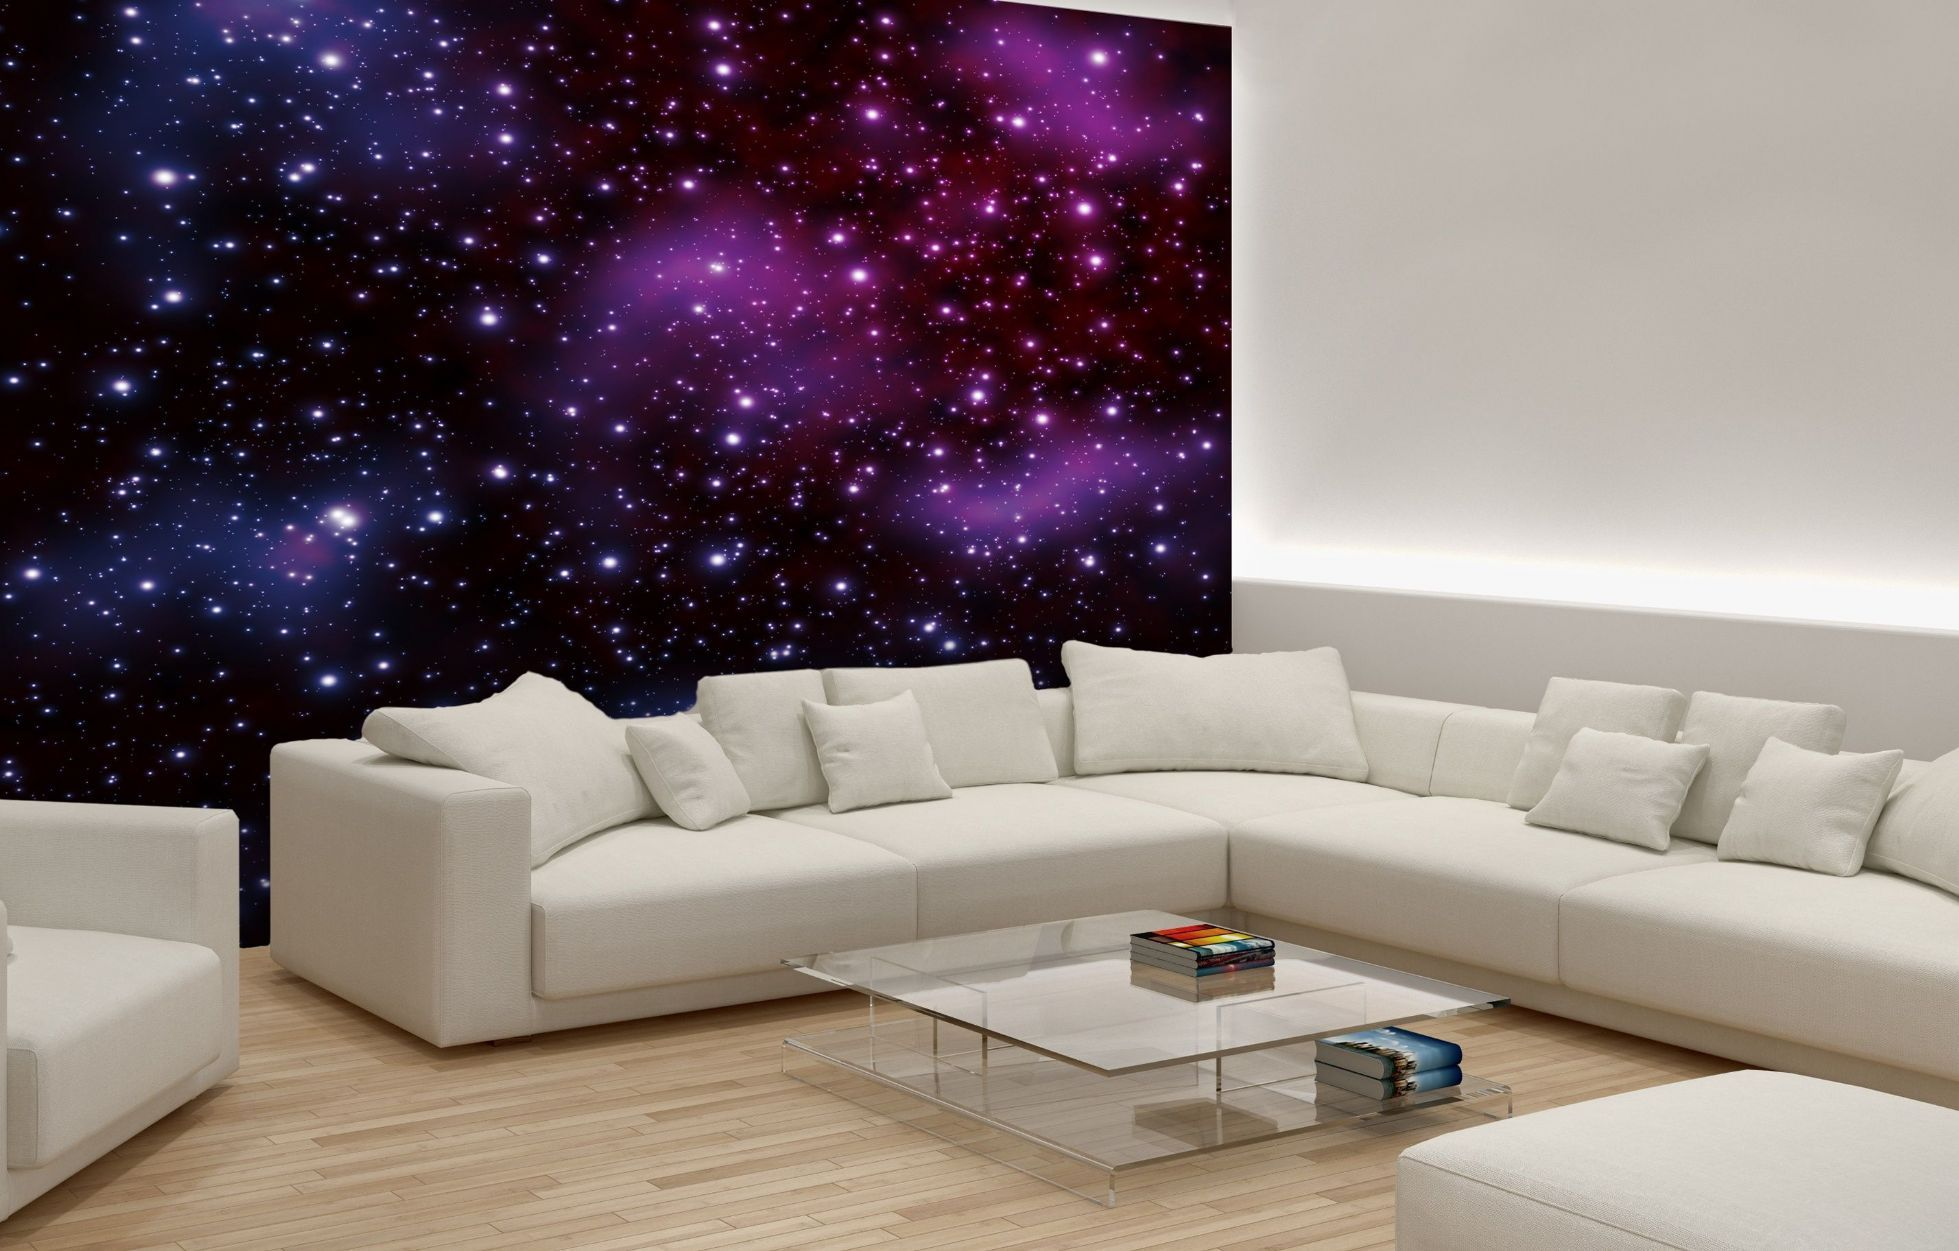 bedroom quot stars the sky wallpaper murals decorated master wall mural ideas